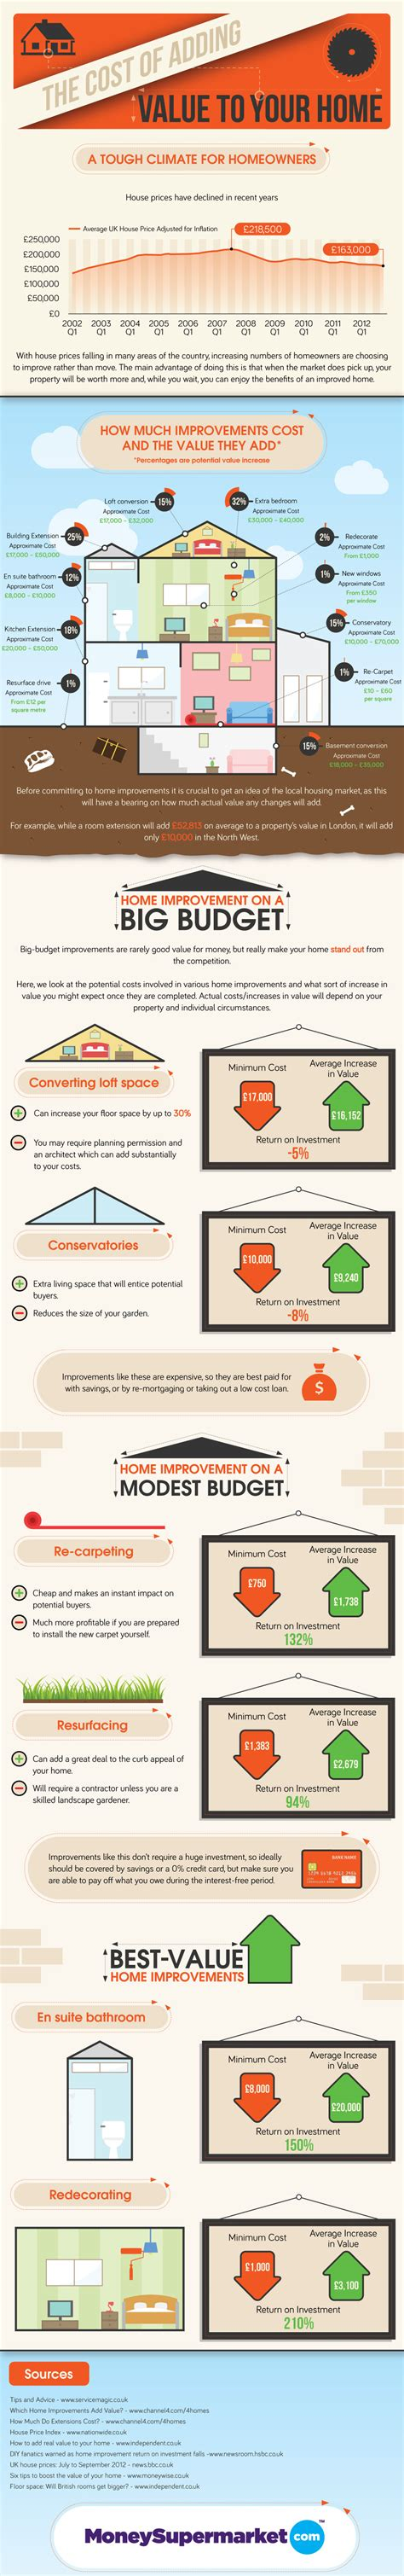 the cost of adding value to your home infographic by